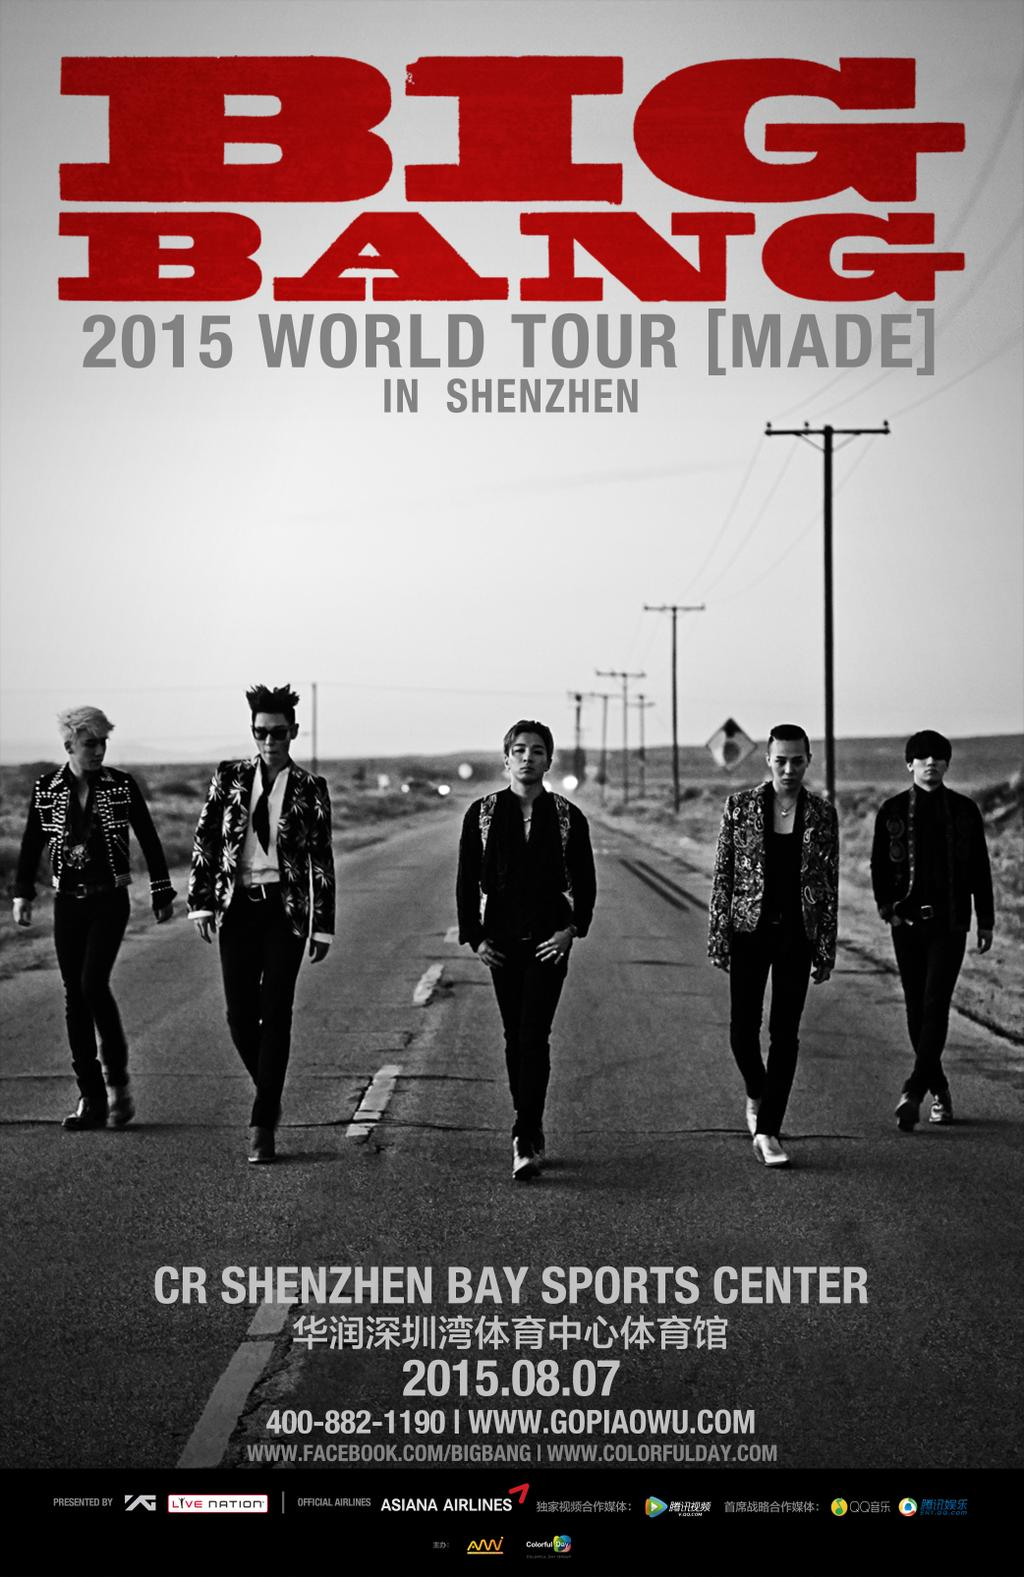 BIGBANG World Tour Shenzhen